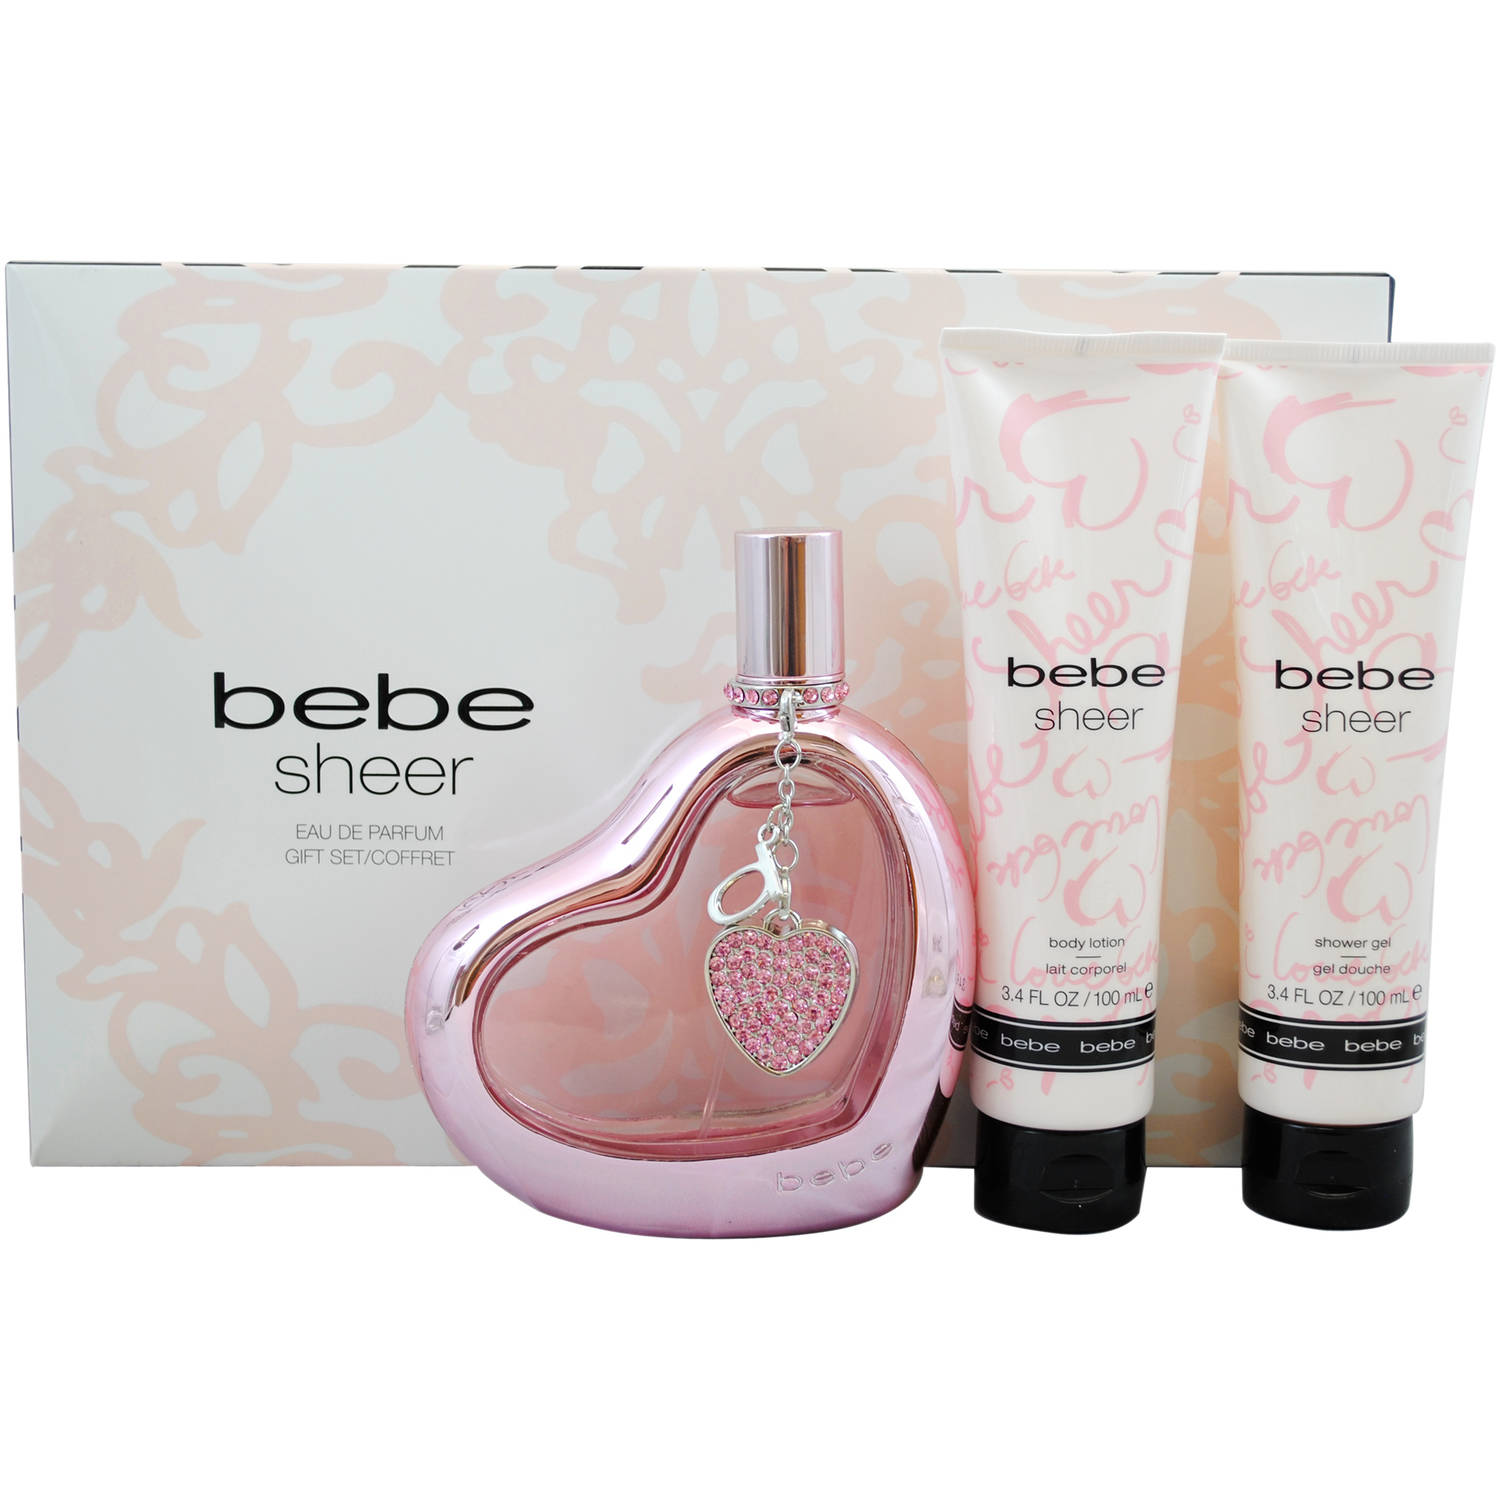 Bebe Sheer by Bebe for Women Gift Set, 4 pc